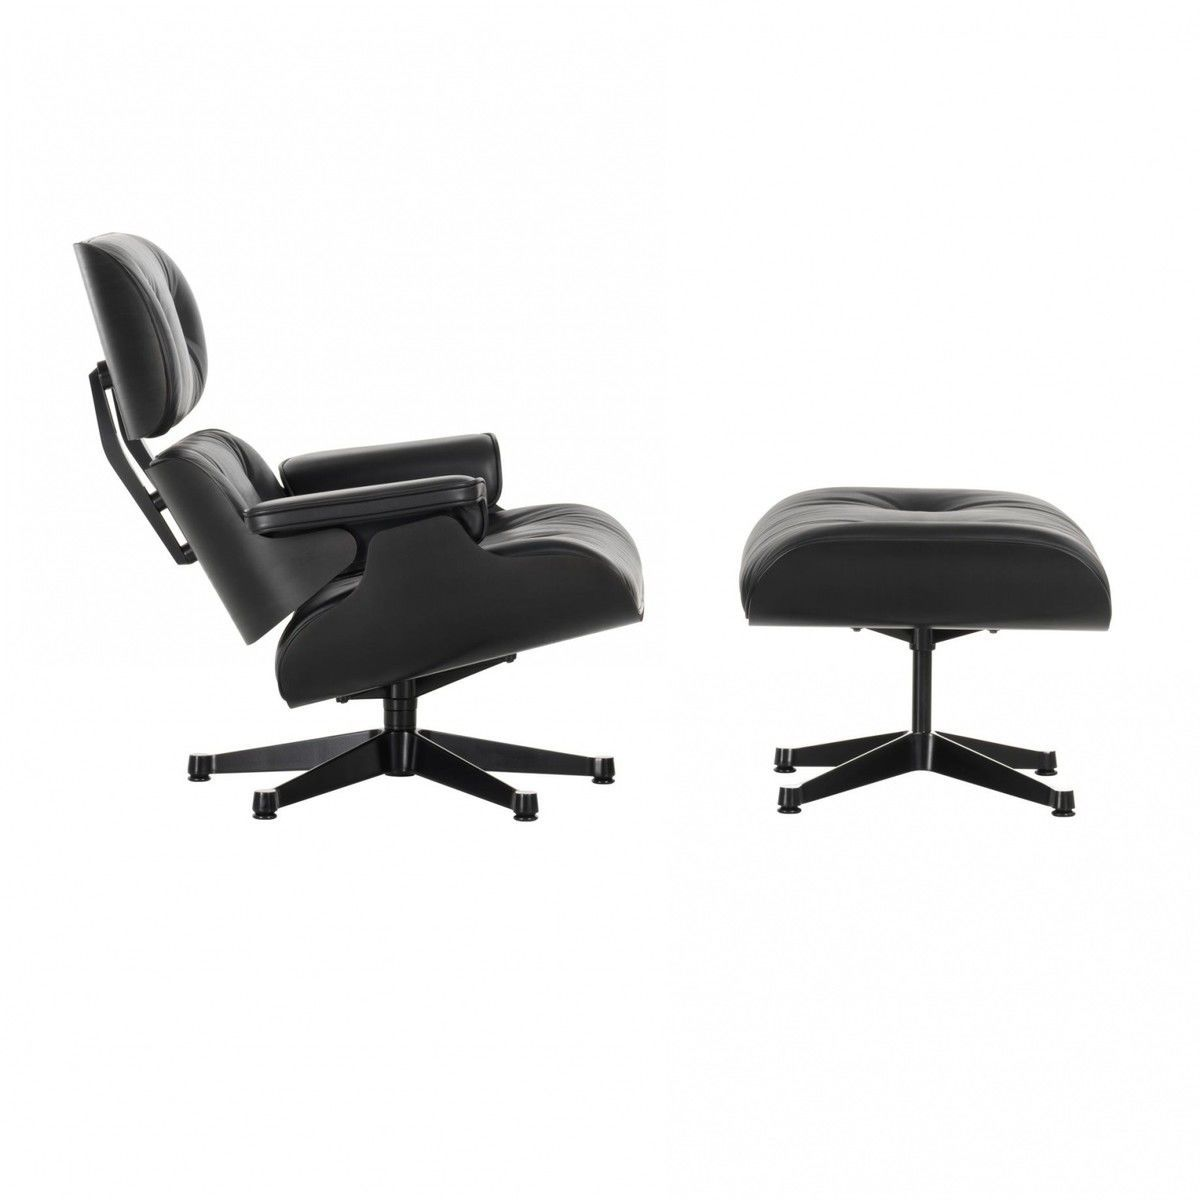 Eames lounge chair nouvelle norme ottoman vitra for Pietement eames